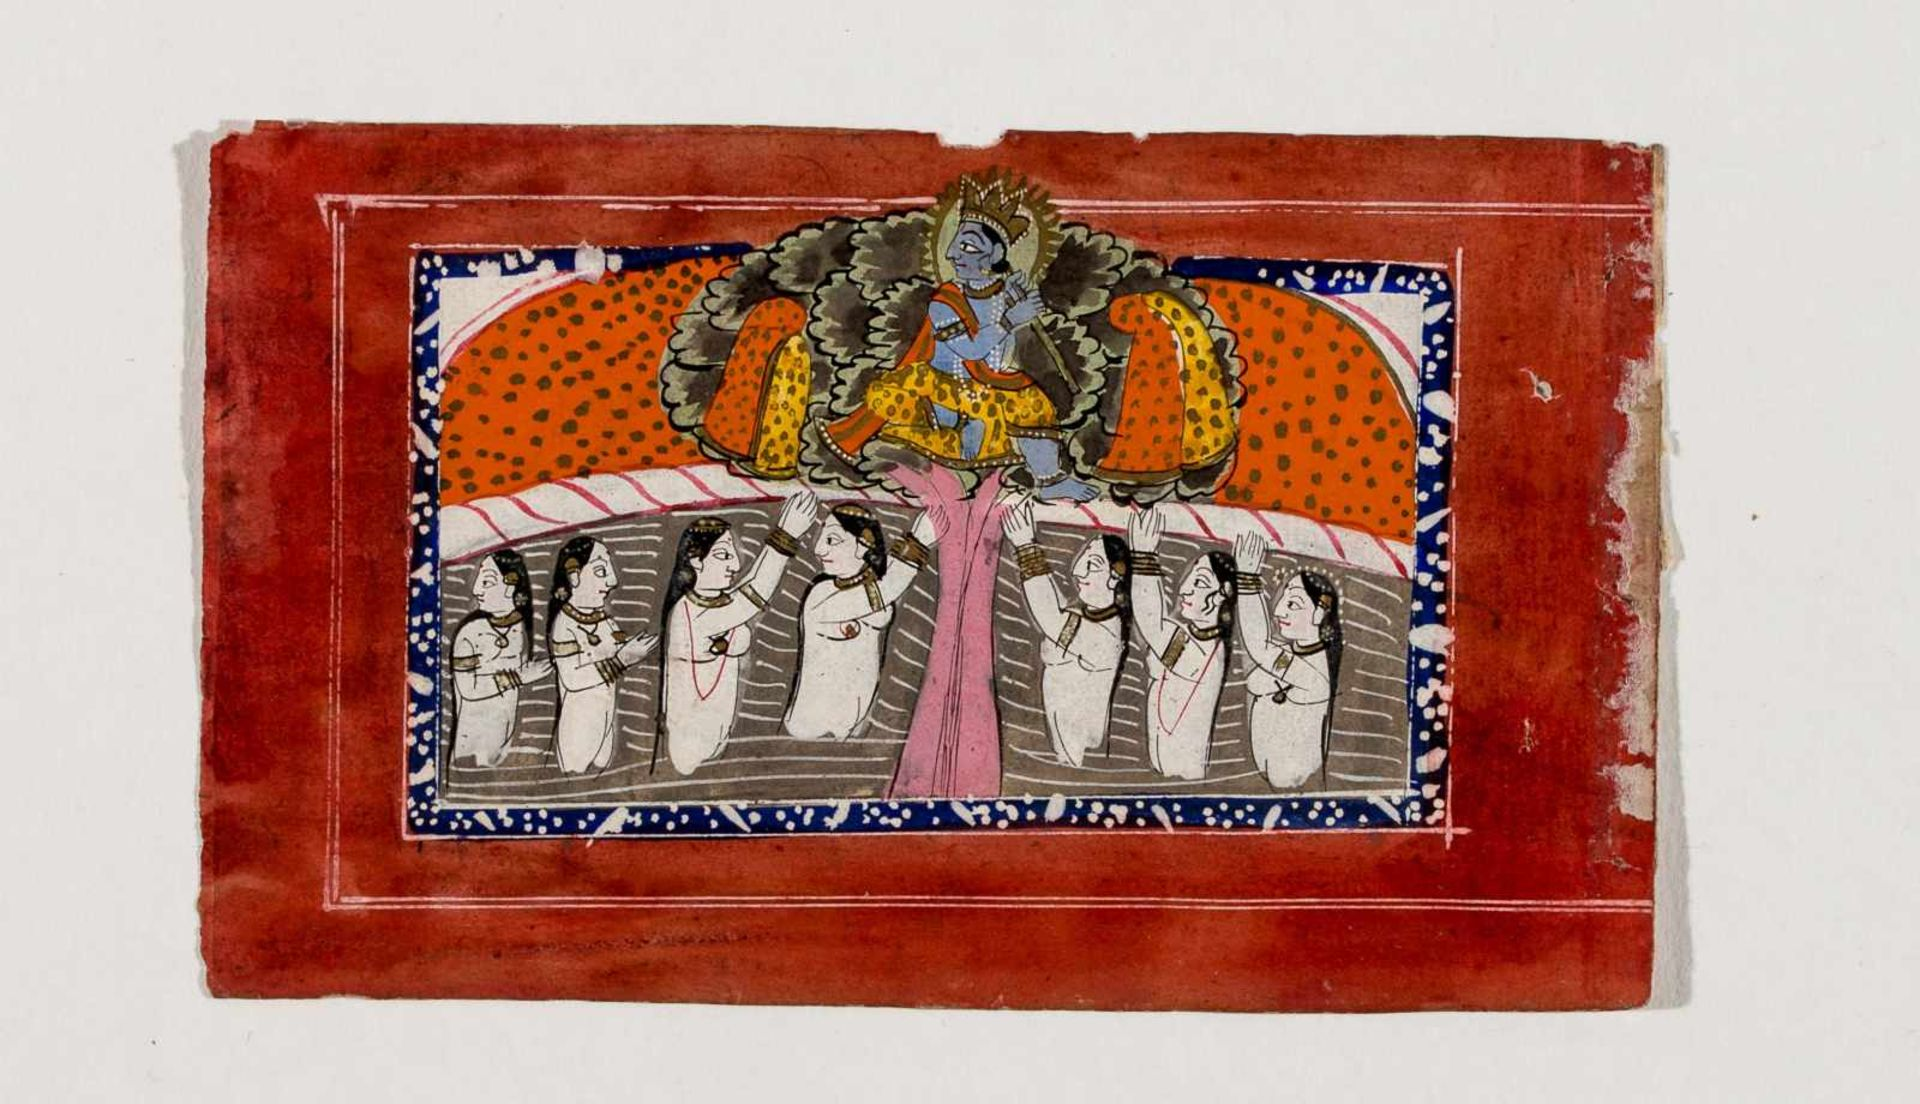 KRISHNA PLAYING THE FLUTE IN FRONT OF BATHING SHEPHERD GIRLS - INDIA, 19TH CENTURYMiniature painting